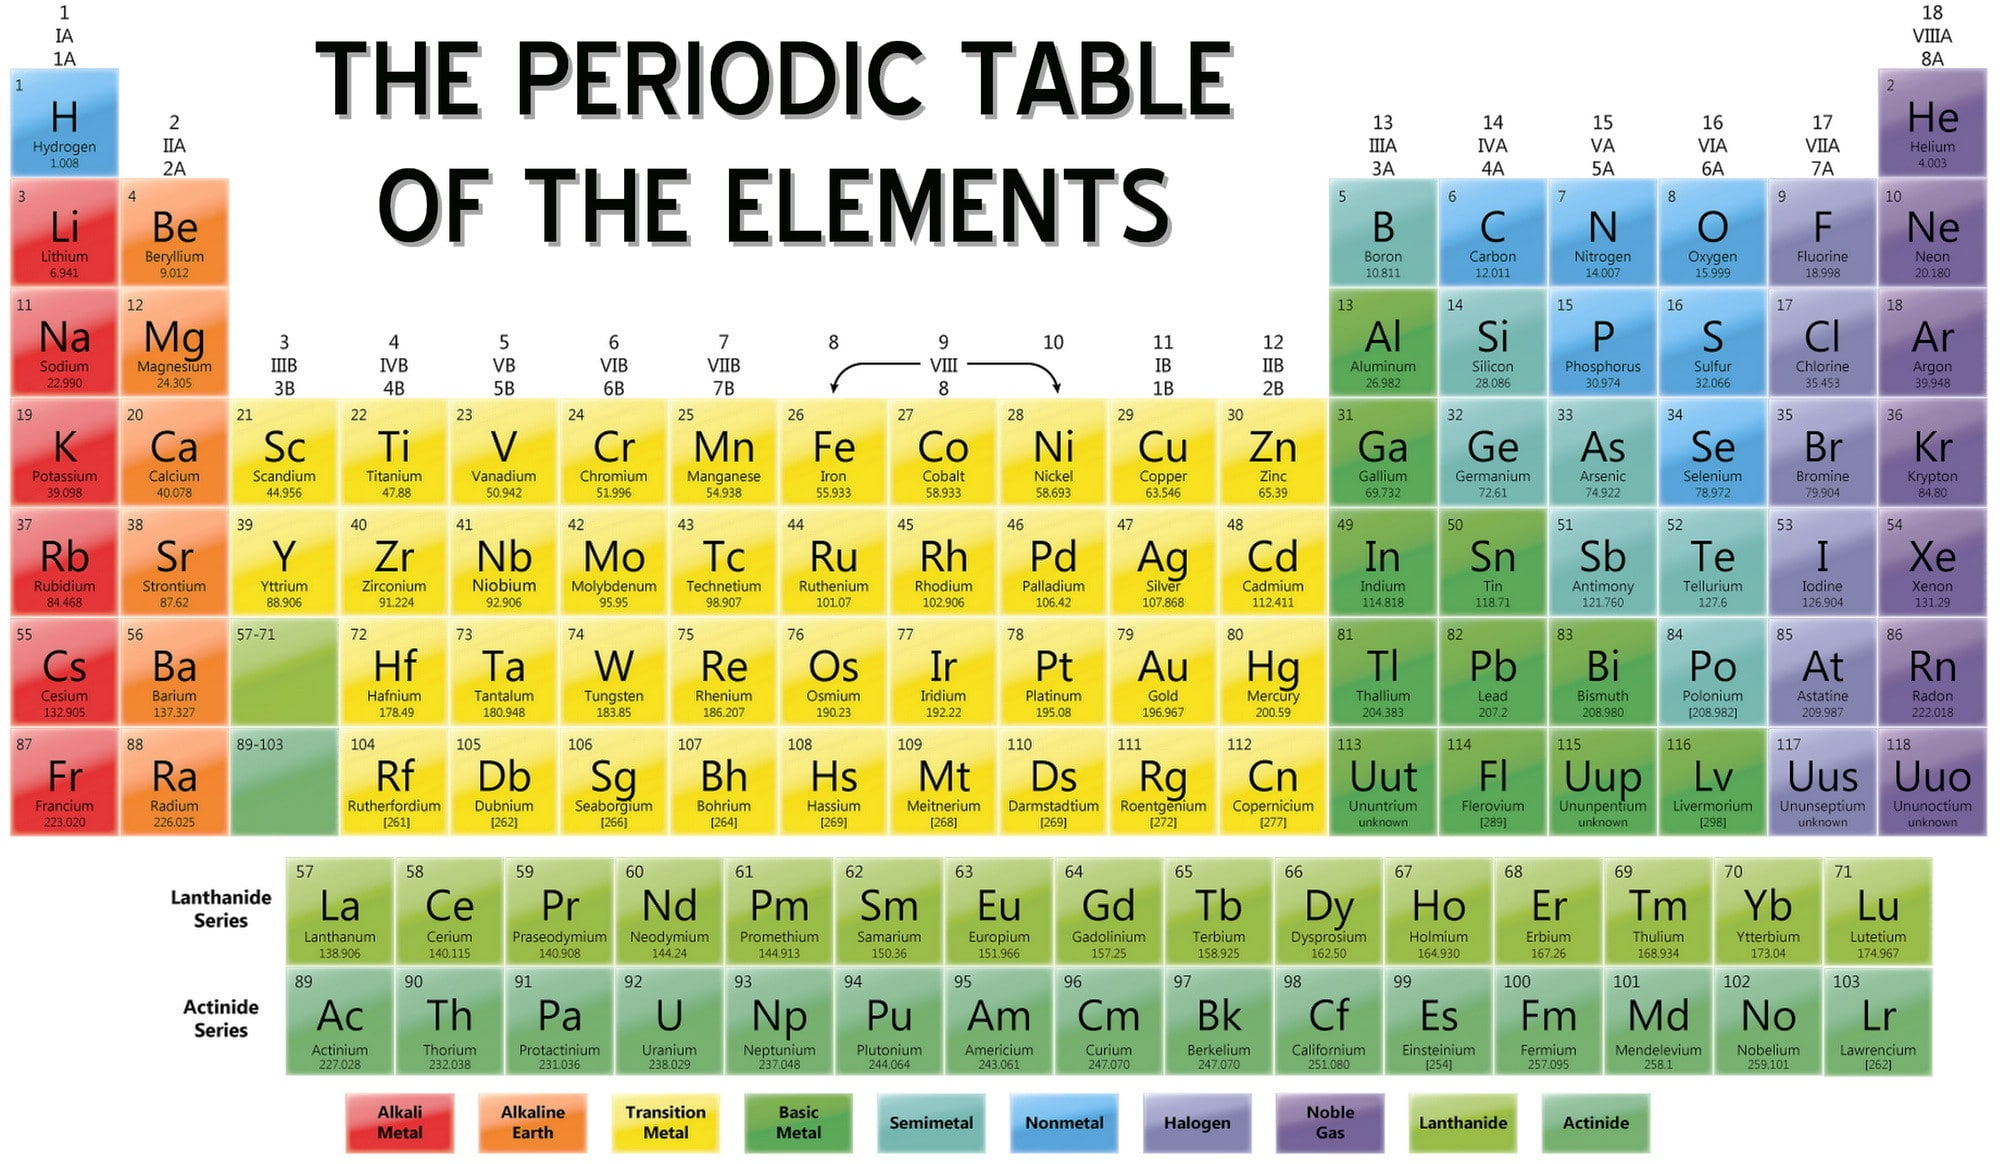 Periodic table of elements thinglink gamestrikefo Choice Image